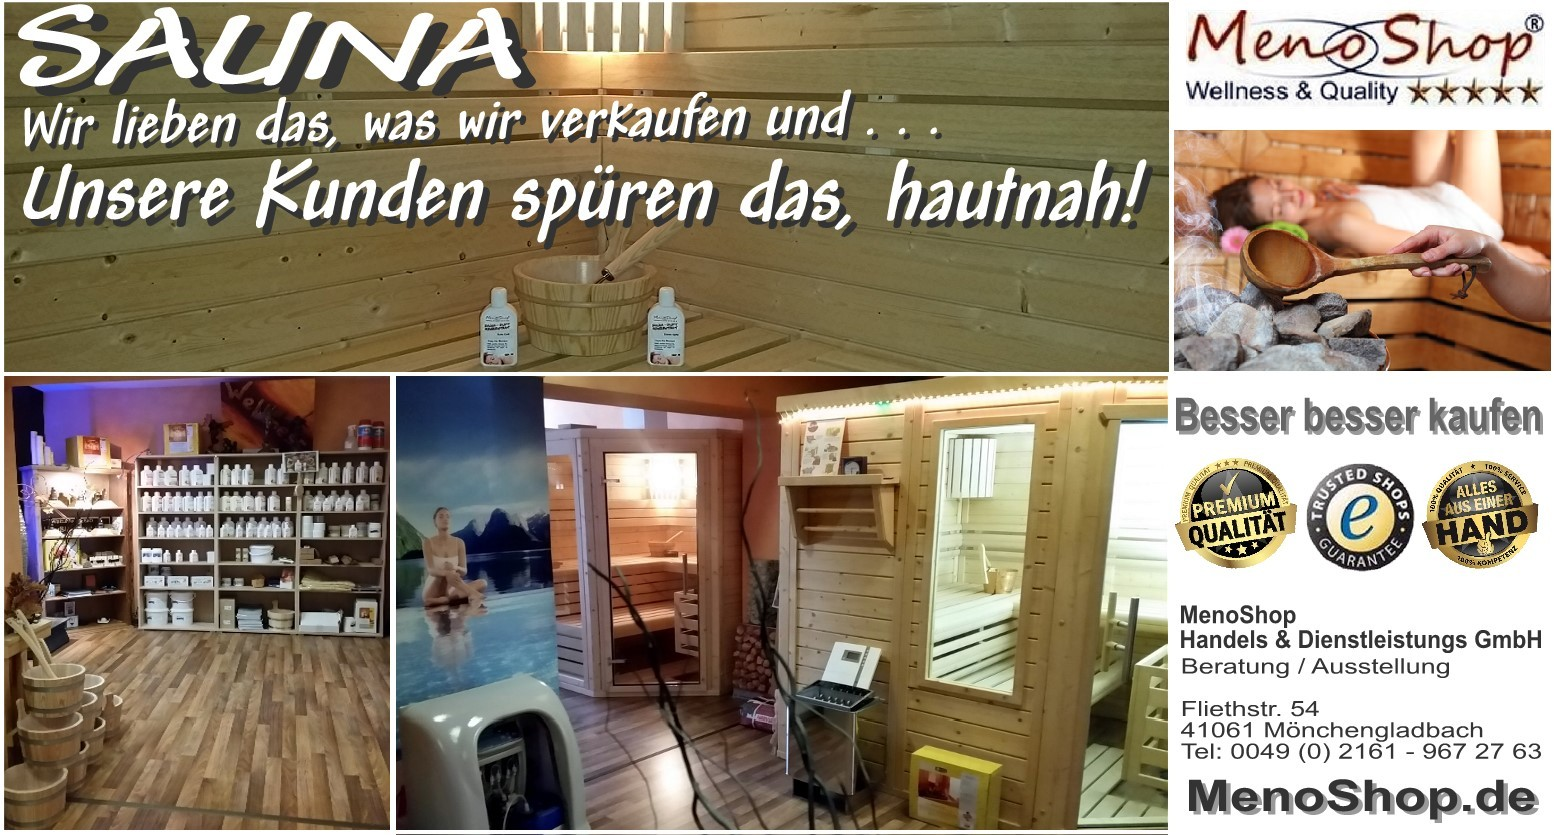 sauna massivholzsauna design sauna inkl technik g nstig kaufen. Black Bedroom Furniture Sets. Home Design Ideas